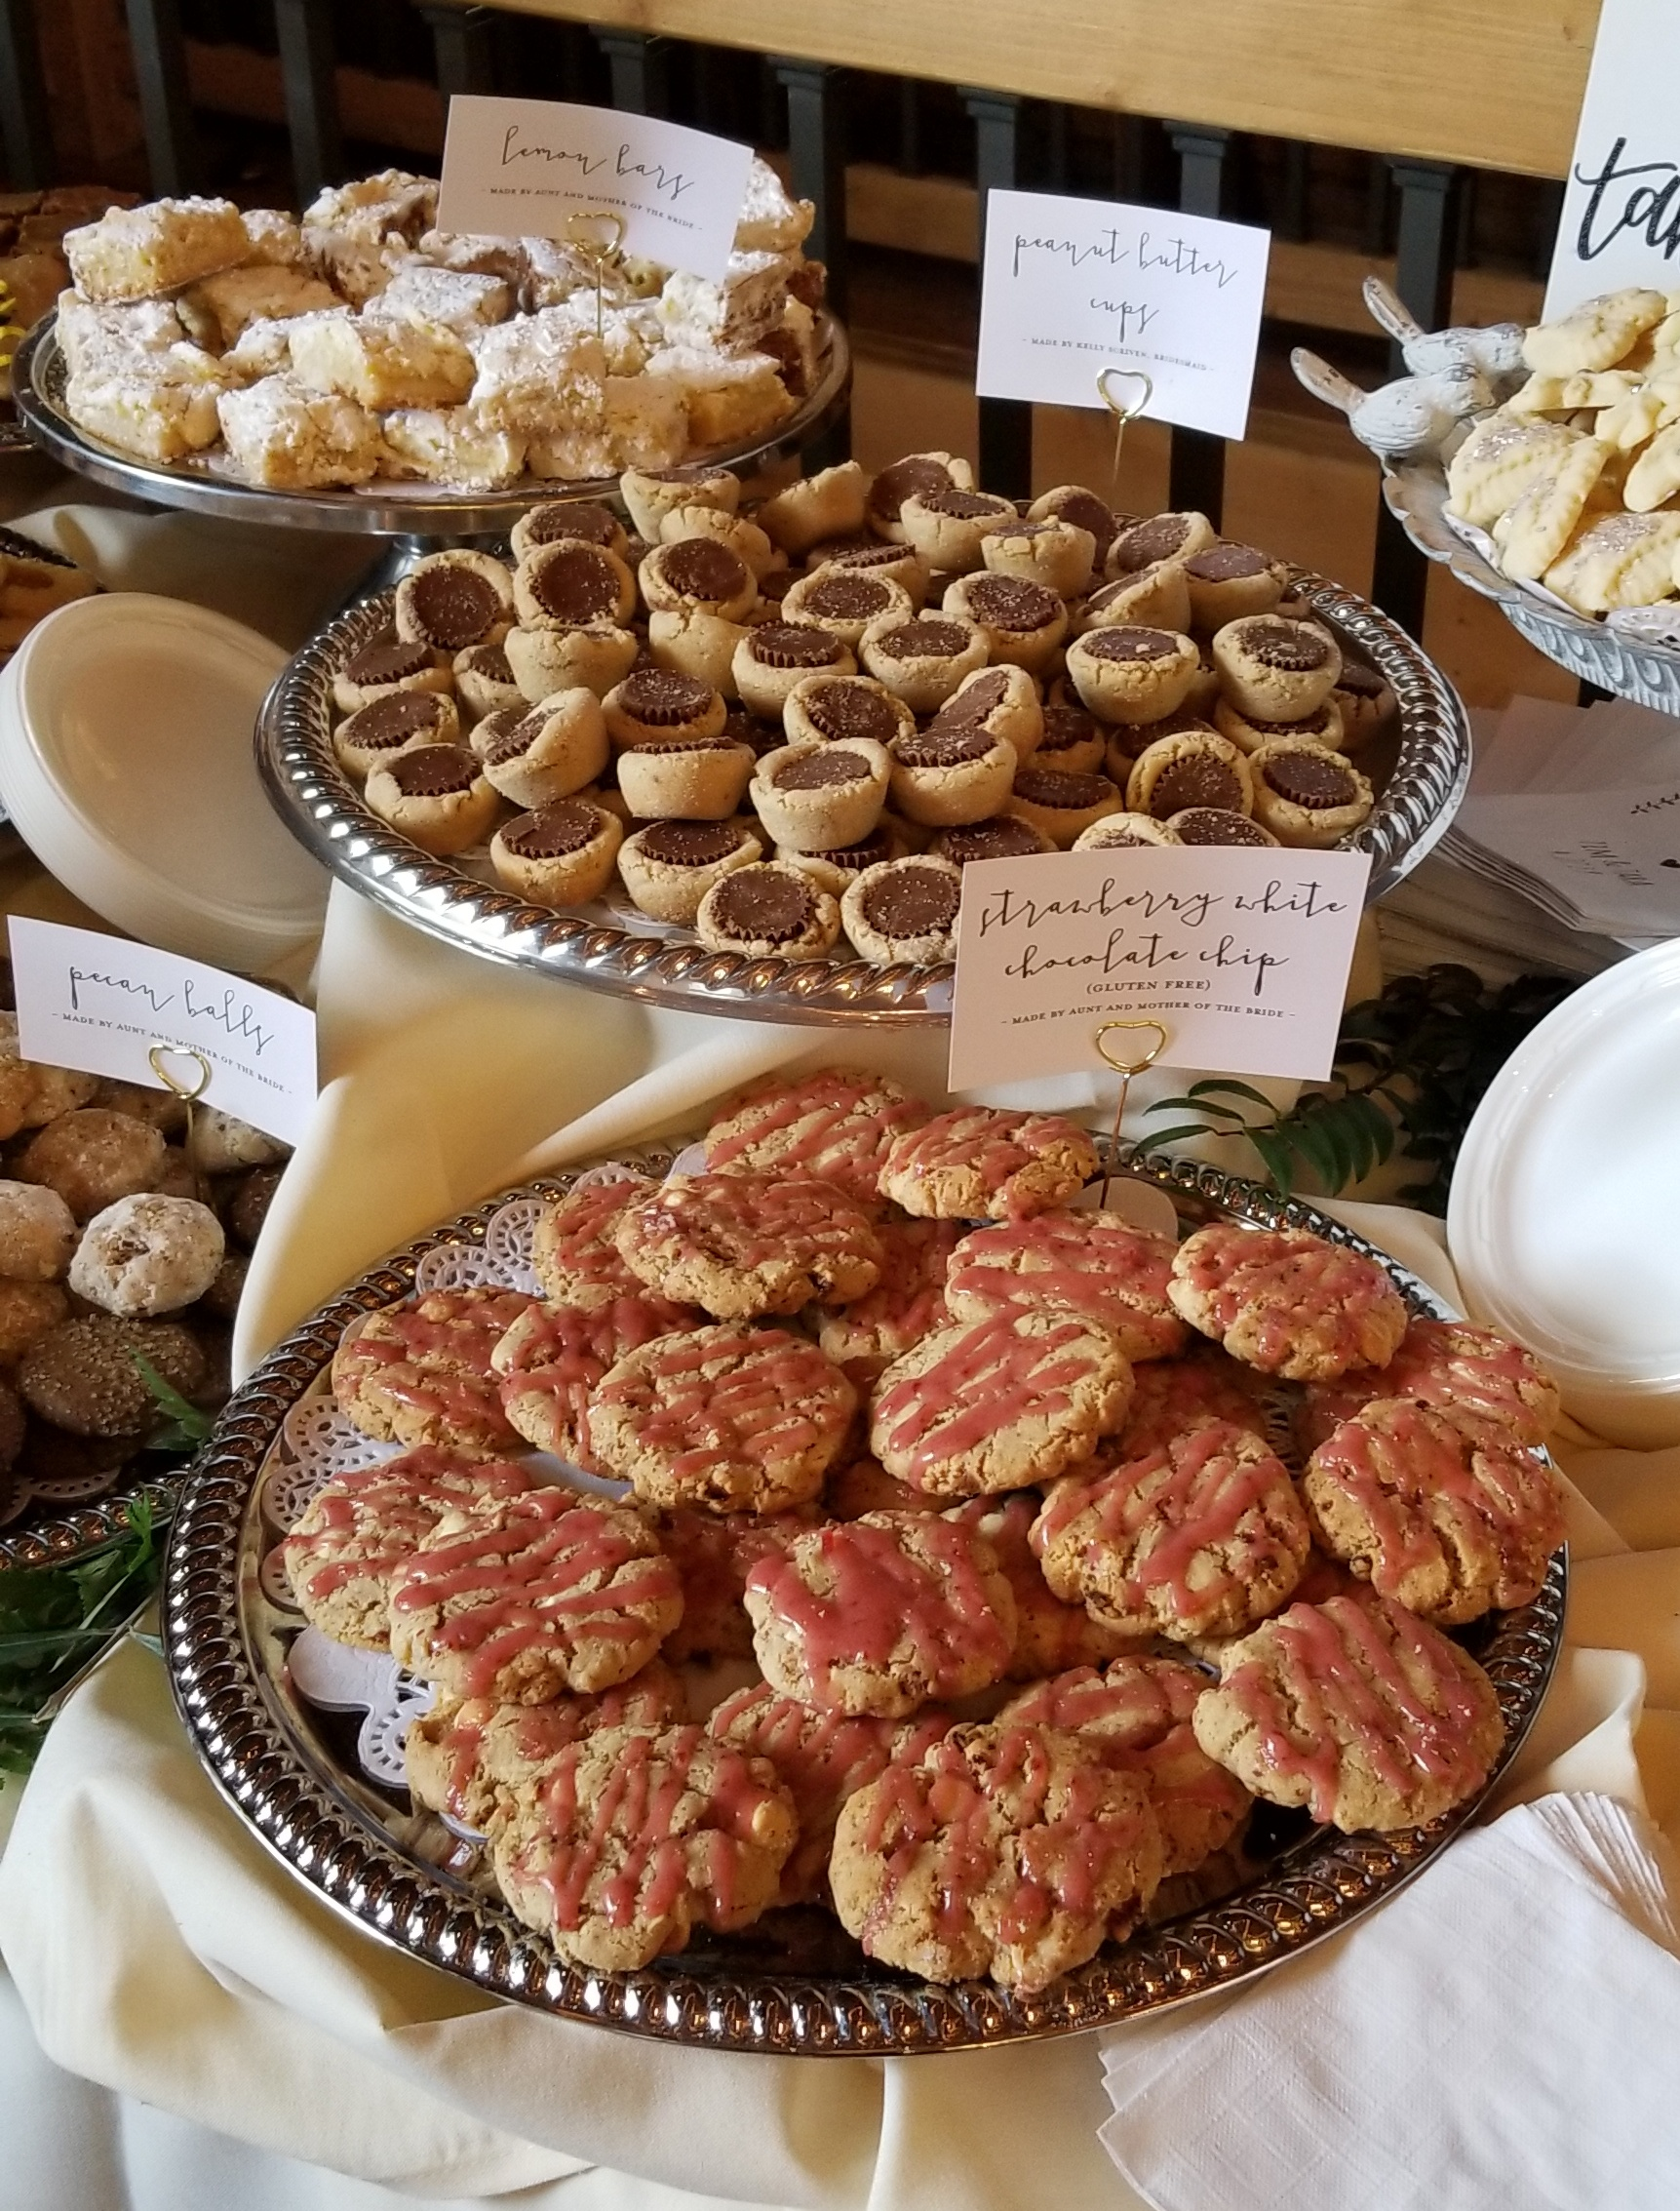 Lemon Bars, Peanut Butter Cups, and Strawberry White Chocolate Chip made an appearance!